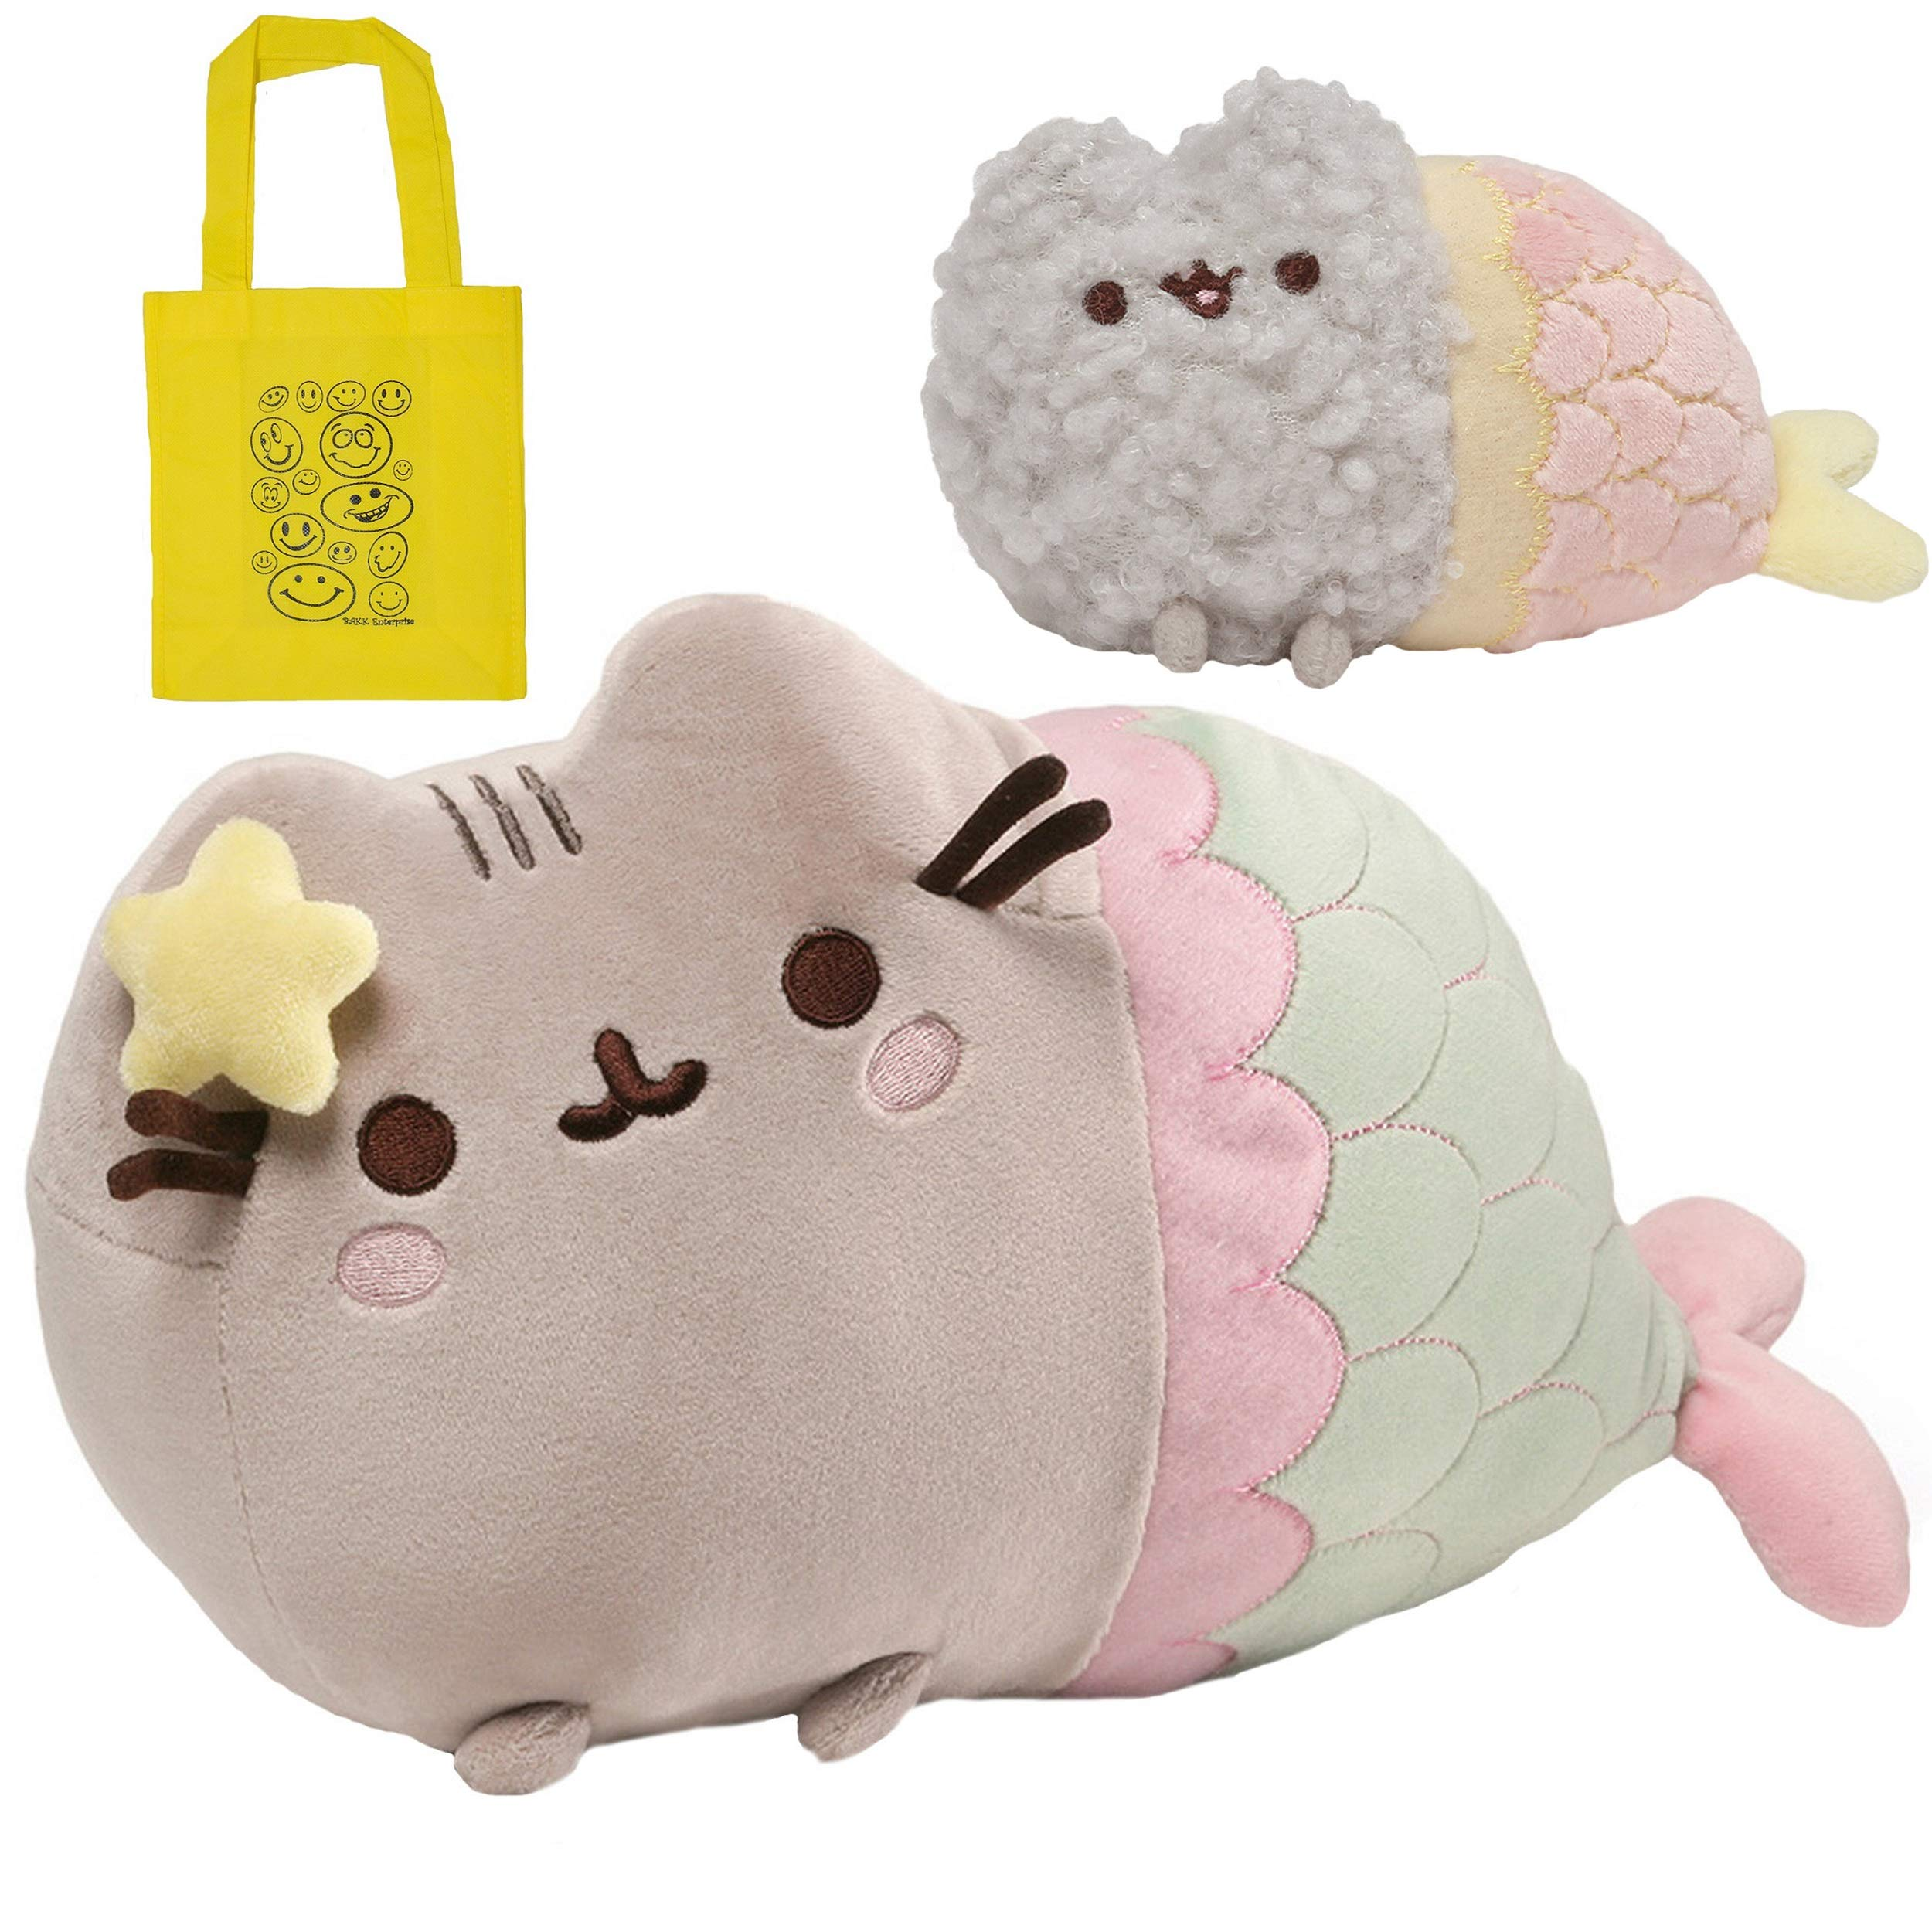 Pusheen GUND Mermaid 12'' Plush, Stormy Mermaid Plush Toy & Tote Bundle Set by Pusheen